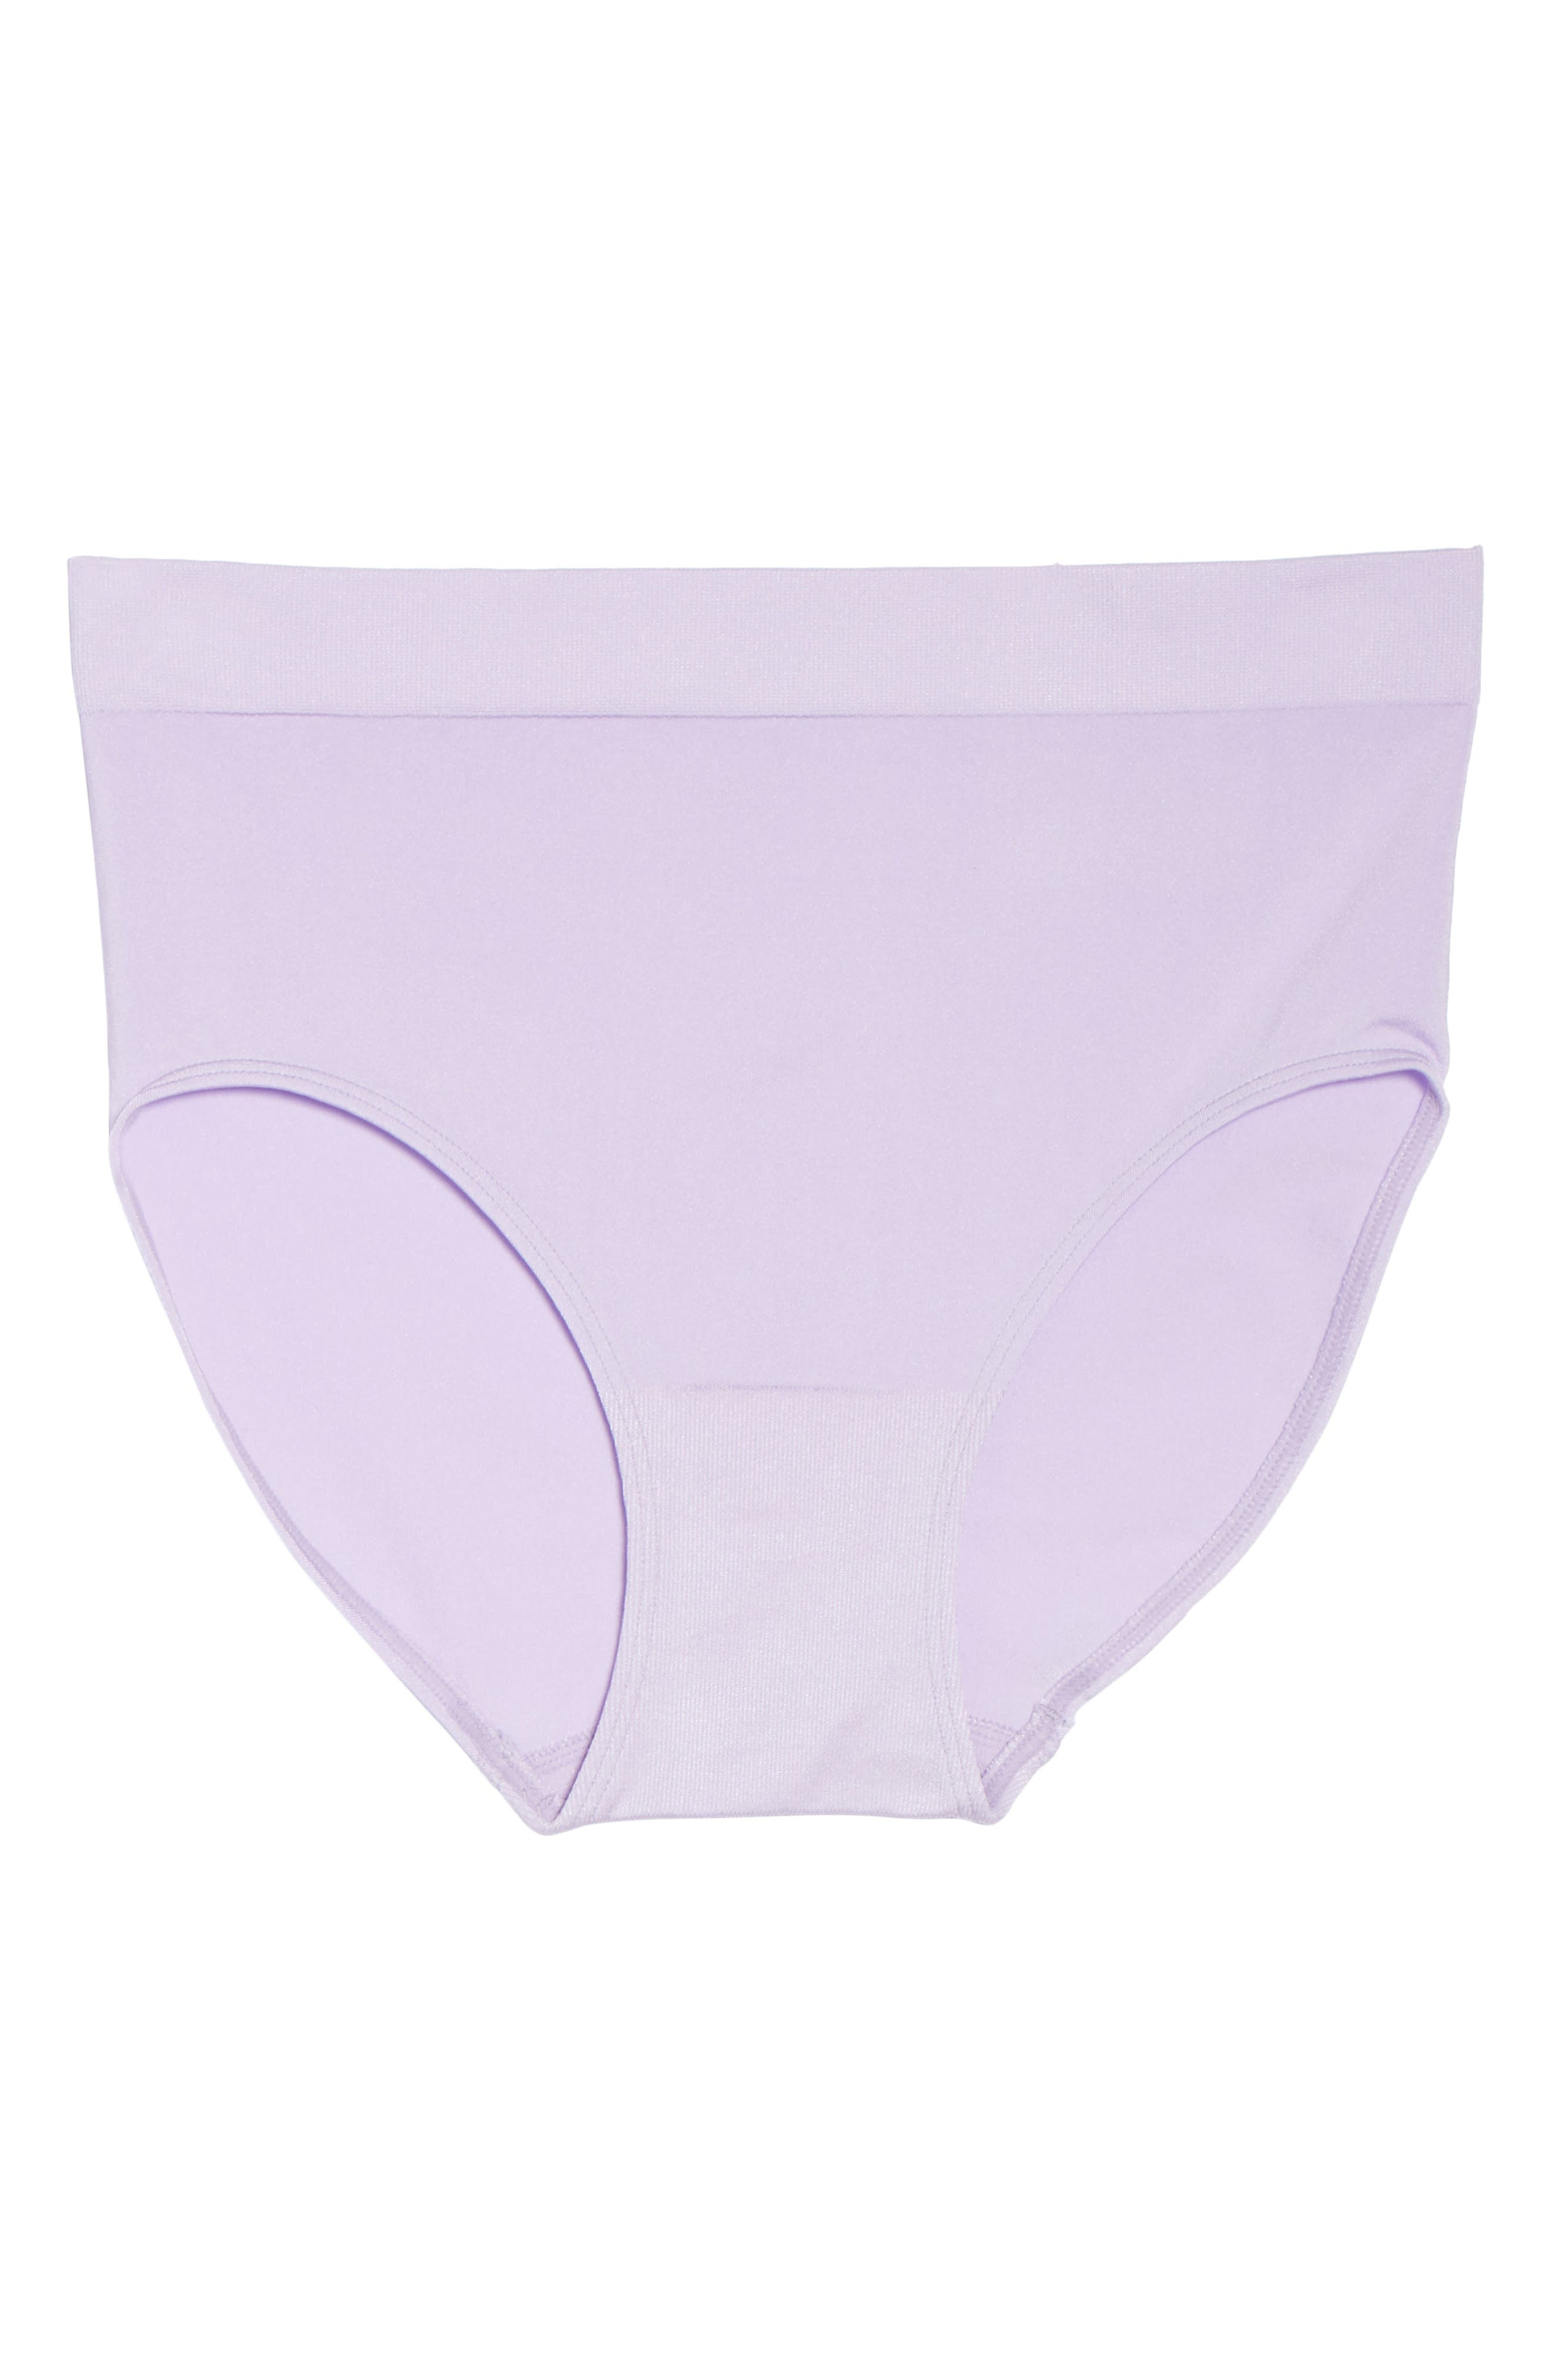 B Smooth Briefs,                             Alternate thumbnail 6, color,                             PASTEL LILAC